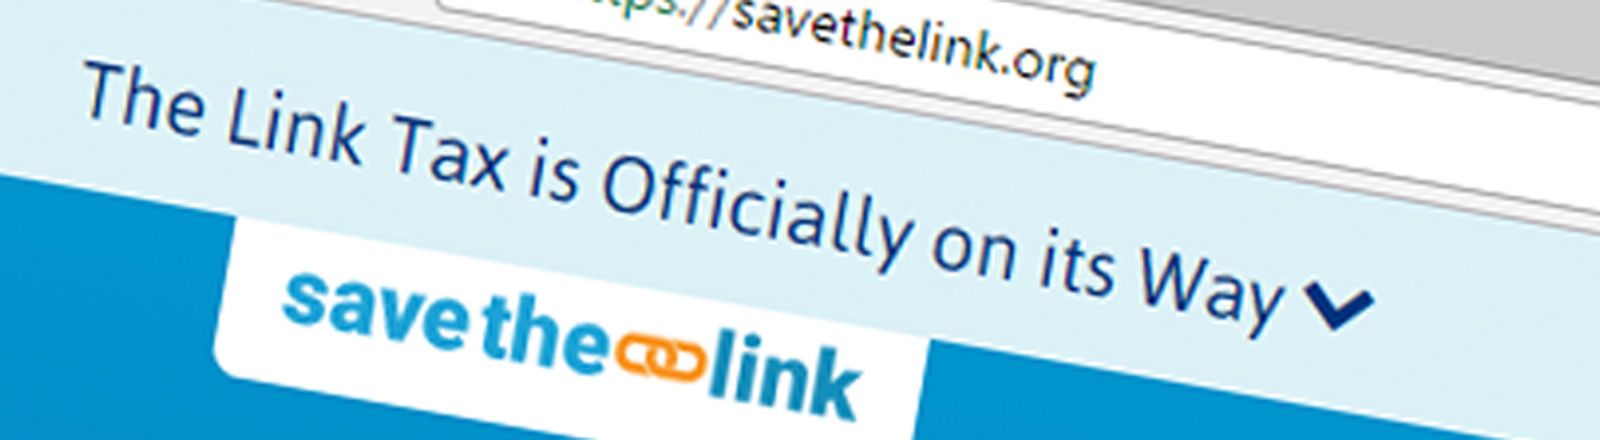 Screenshot der Website savethelink.org